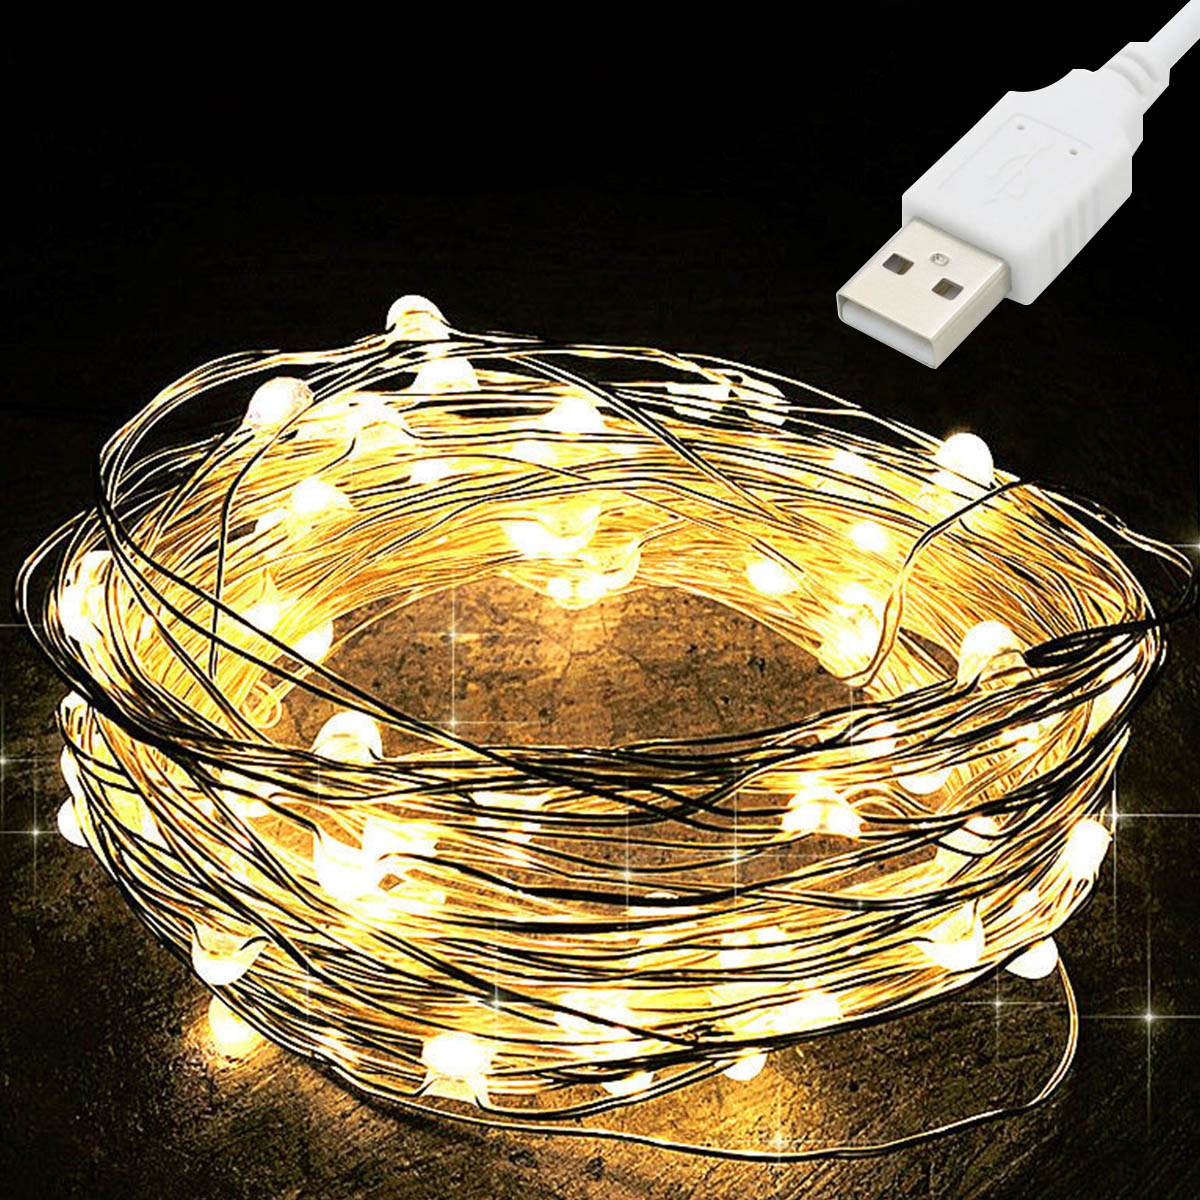 fairy lights usb 5m 10m silver led copper wire string light christmas holiday lights wedding patio decorations garden lighting 10M USB LED String Light Waterproof LED Copper Wire String Holiday Outdoor Fairy Lights For Christmas Party Wedding Decoration